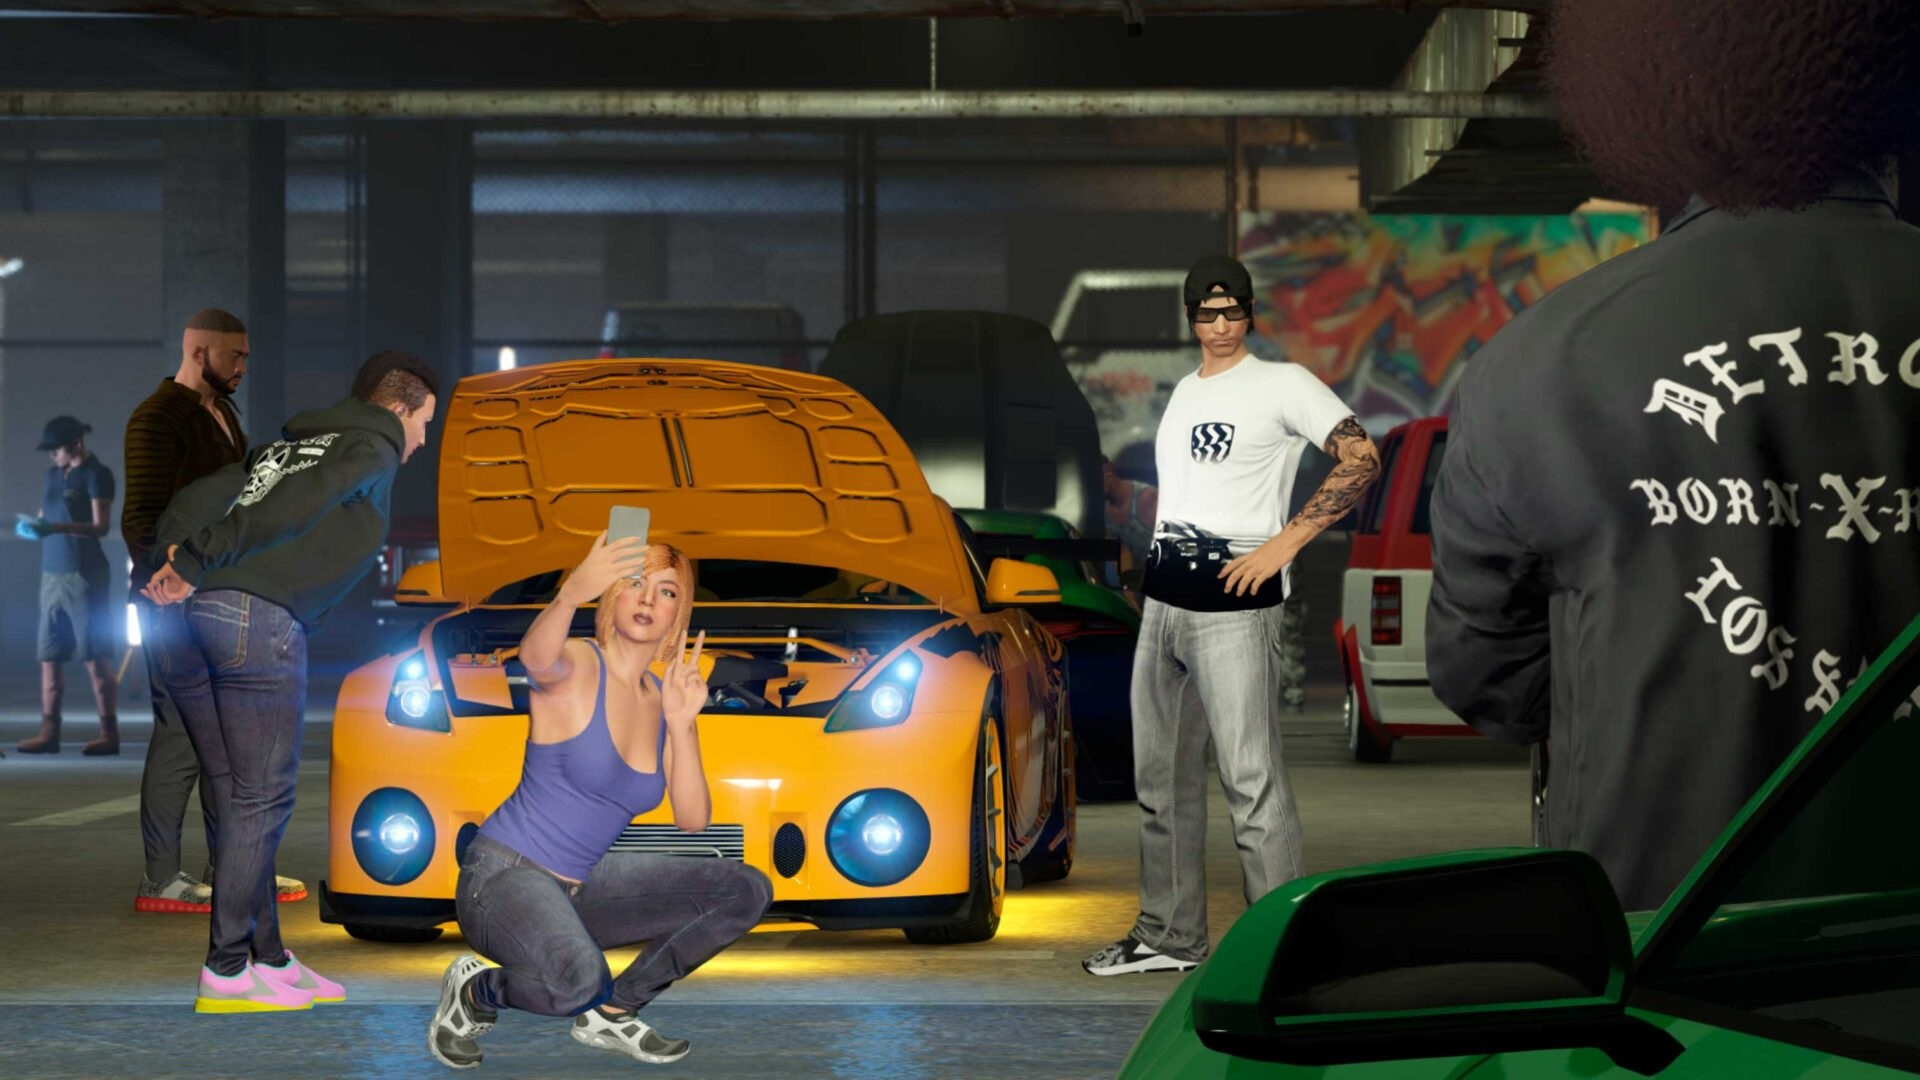 Image of a car meet with people posing in front of a roadster.